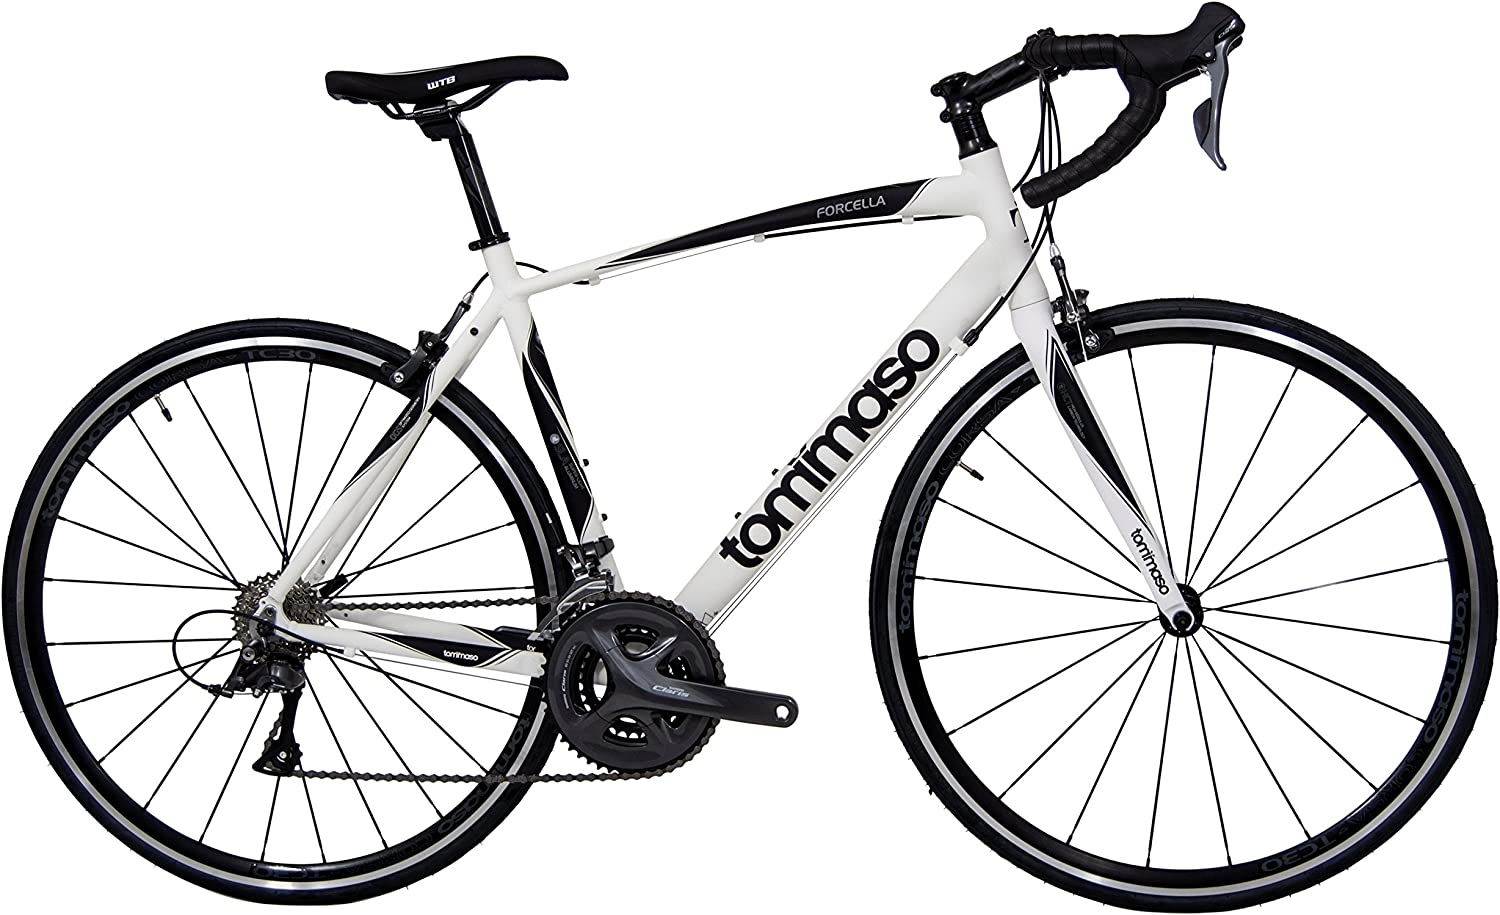 Best road bikes under 2000: Tommaso Forcella Endurance Aluminum Road Bike